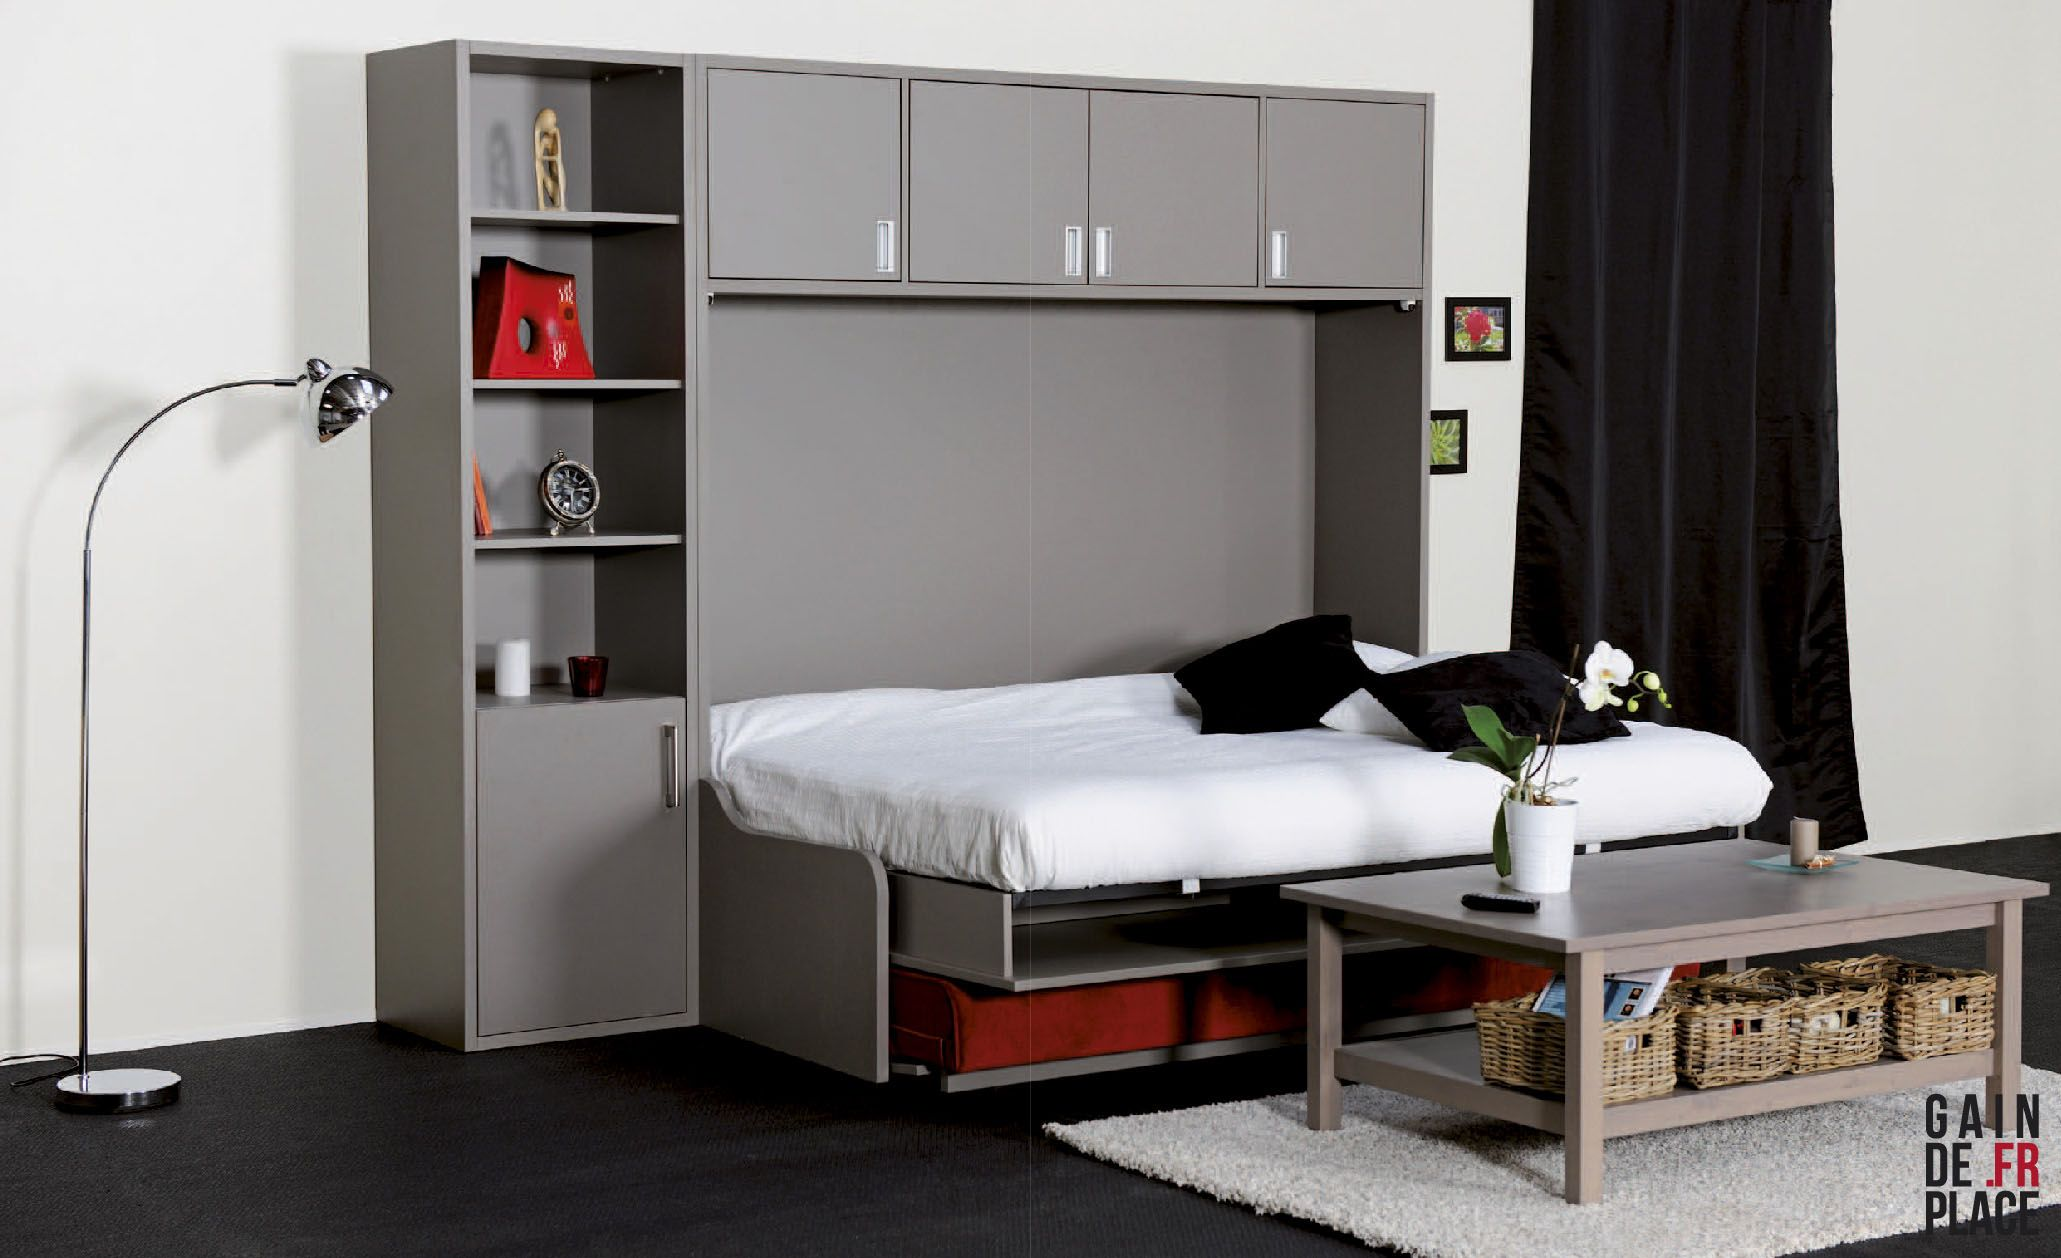 lit escamotable avec canap le must du gain de place l 39 optimisation de vos espaces est. Black Bedroom Furniture Sets. Home Design Ideas